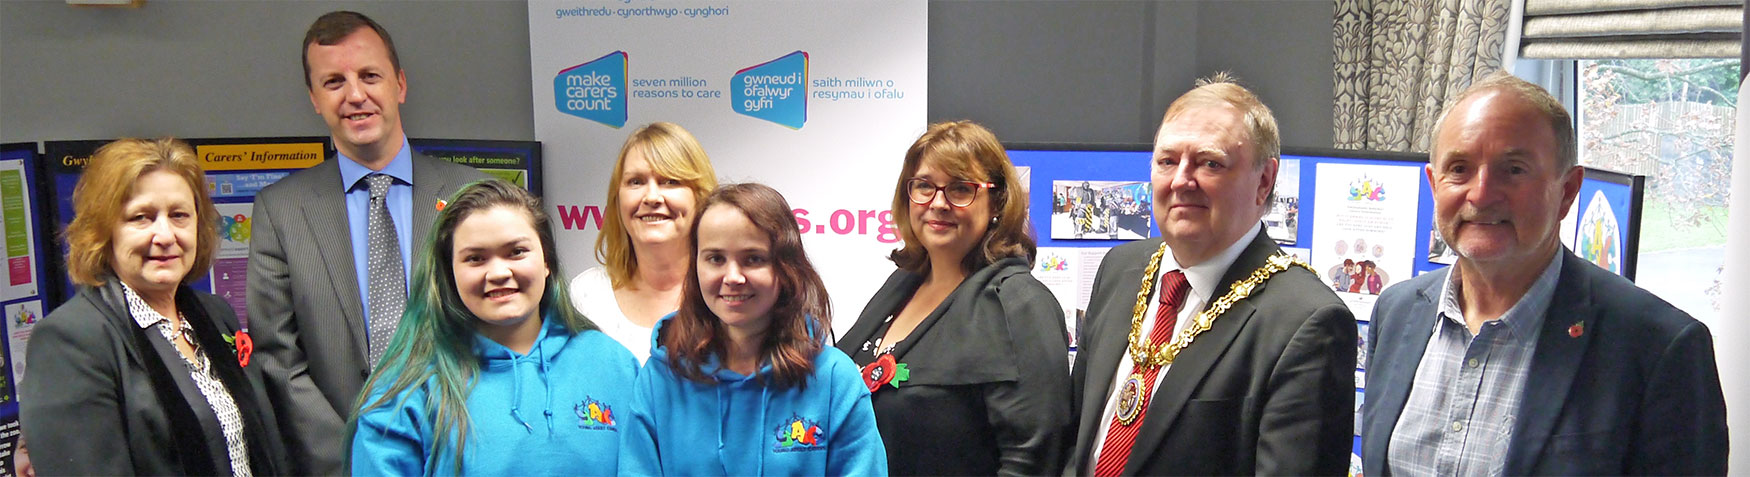 young-carers-header.jpg